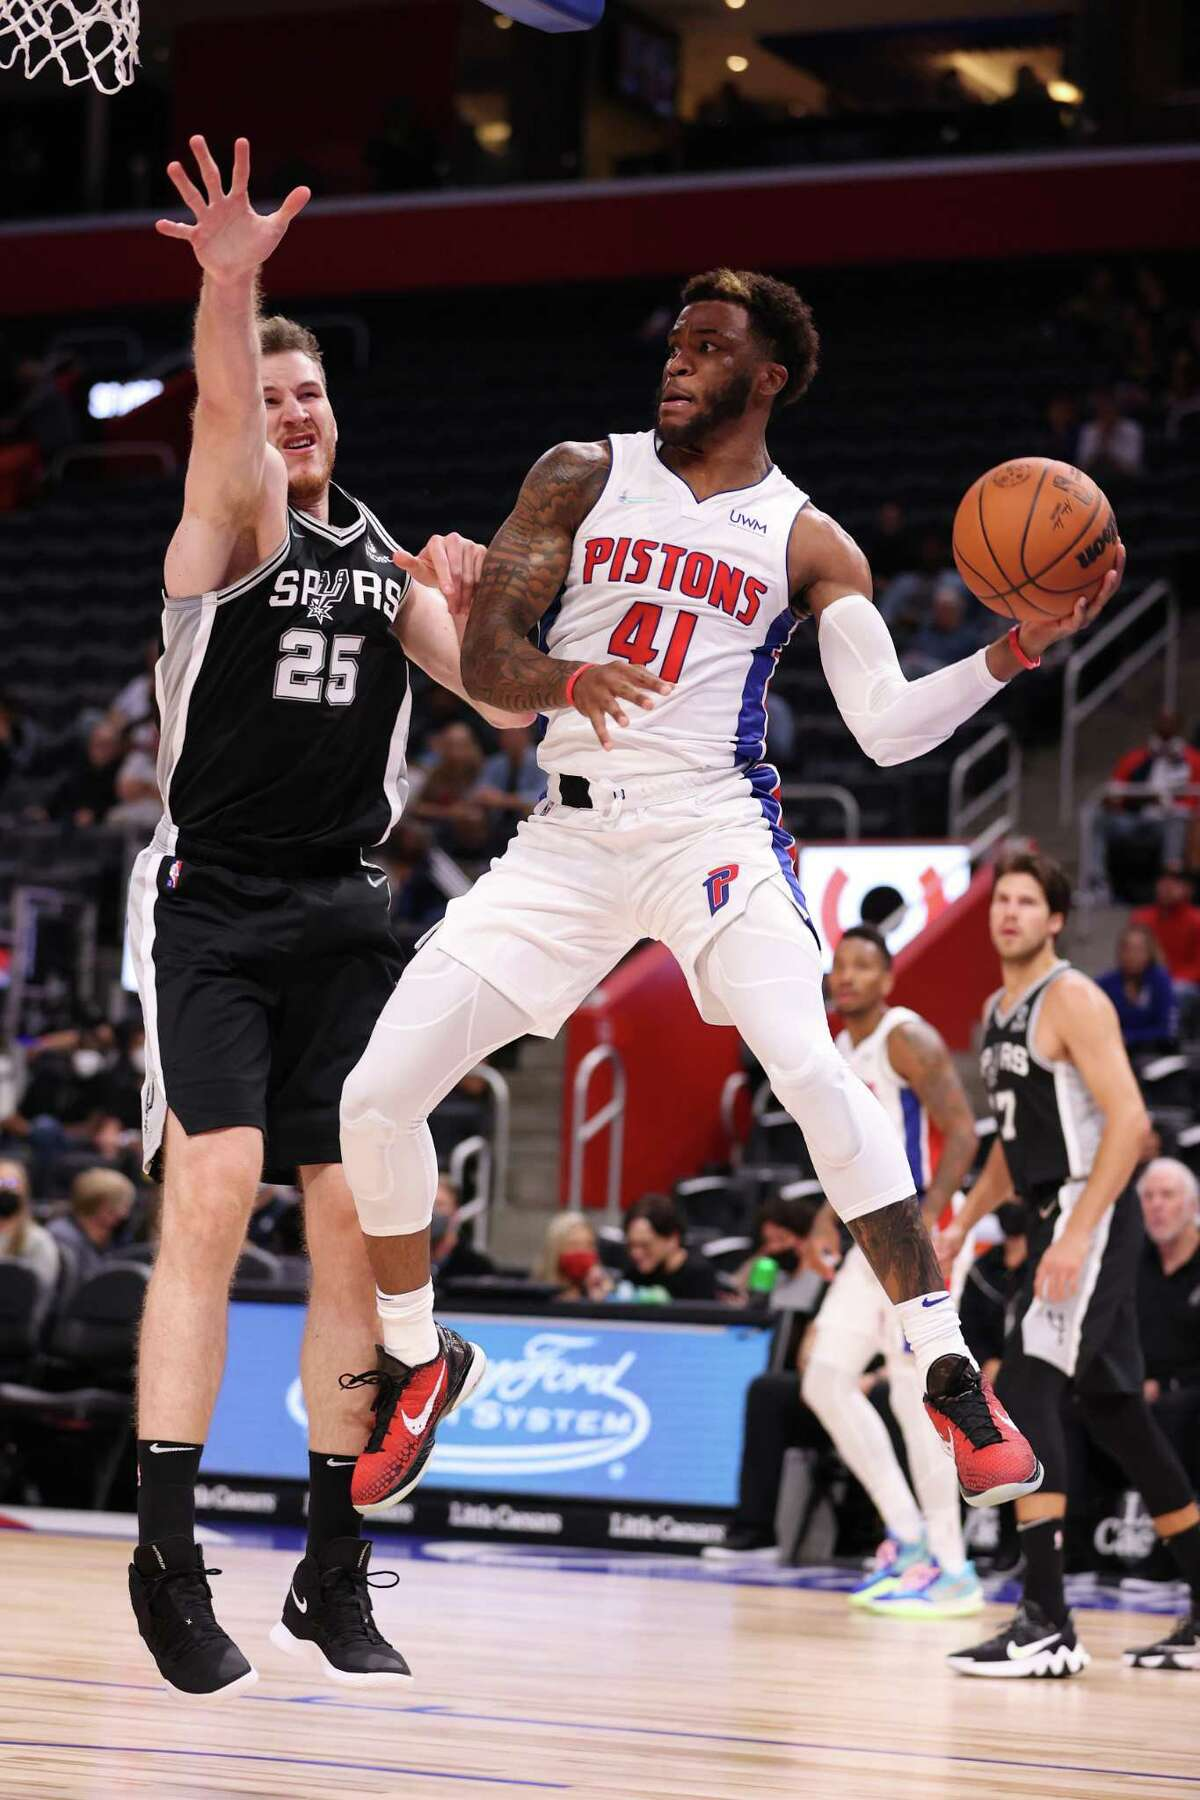 DETROIT, MICHIGAN - OCTOBER 06: Saddiq Bey #41 of the Detroit Pistons passes away from Jakob Poeltl #25 of the San Antonio Spurs during a preseason game at Little Caesars Arena on October 06, 2021 in Detroit, Michigan. NOTE TO USER: User expressly acknowledges and agrees that, by downloading and or using this photograph, User is consenting to the terms and conditions of the Getty Images License Agreement. (Photo by Gregory Shamus/Getty Images)